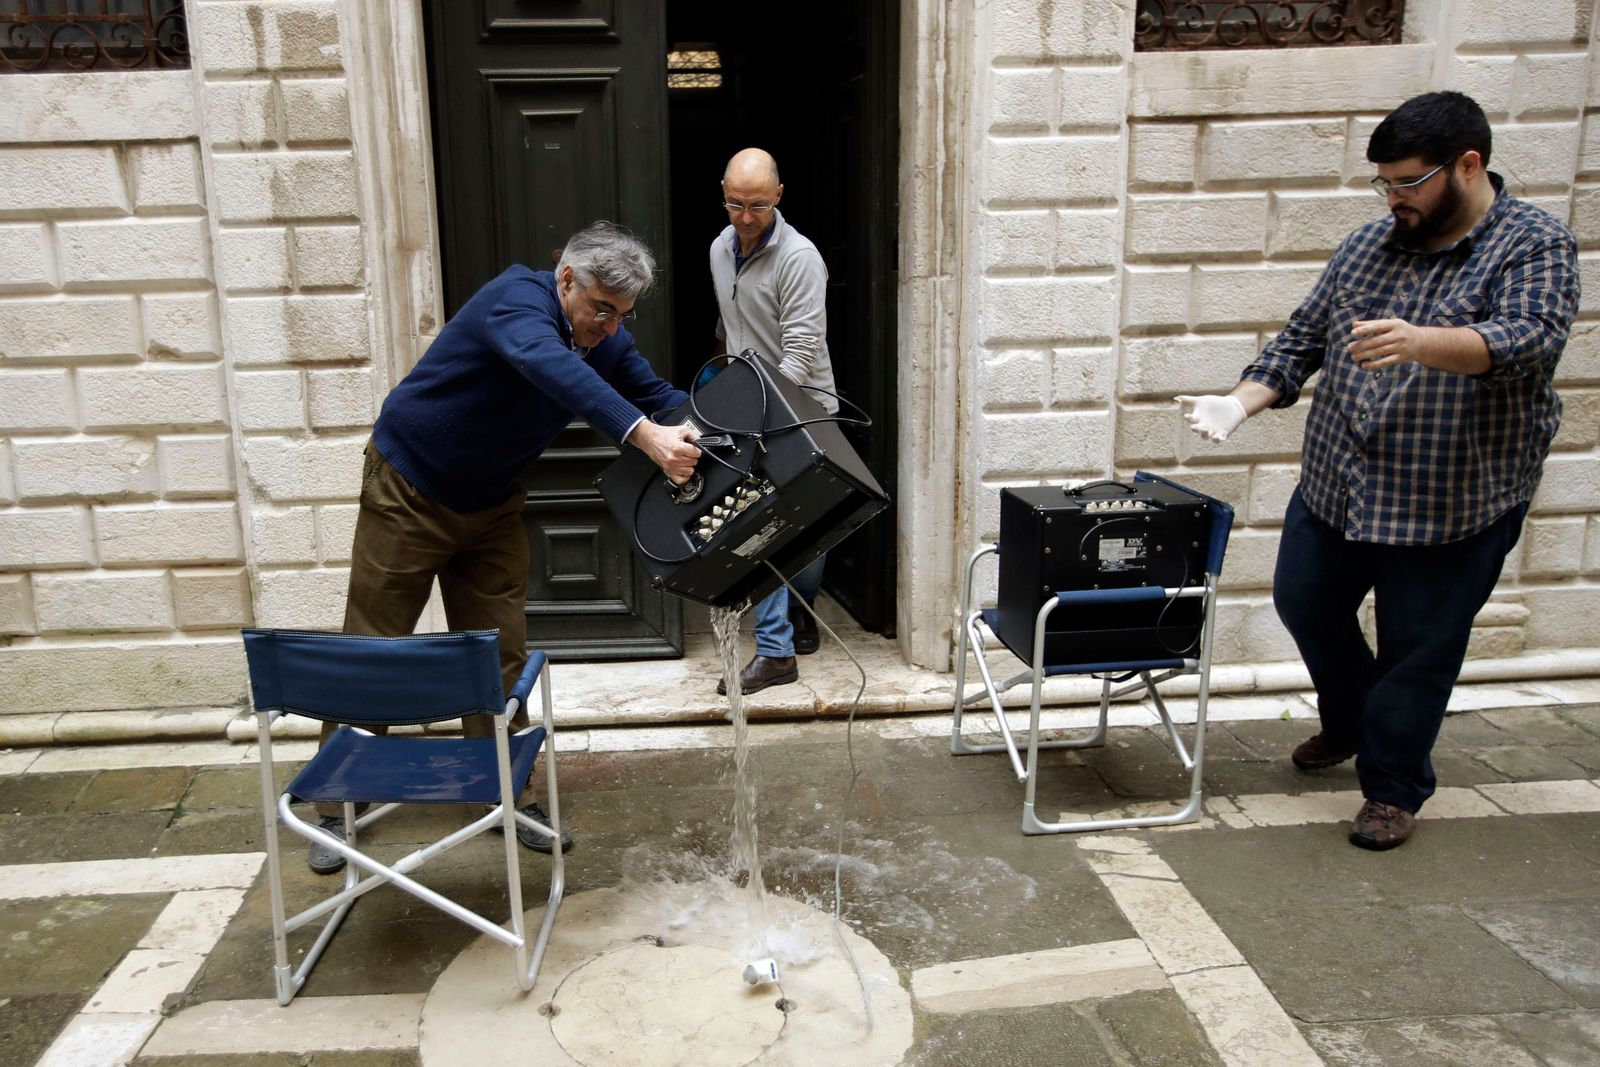 A man empties electronic equipment from water in Venice, Italy, Saturday, Nov. 16, 2019. High tidal waters returned to Venice on Saturday, four days after the city experienced its worst flooding in 50 years. (AP Photo/Luca Bruno)